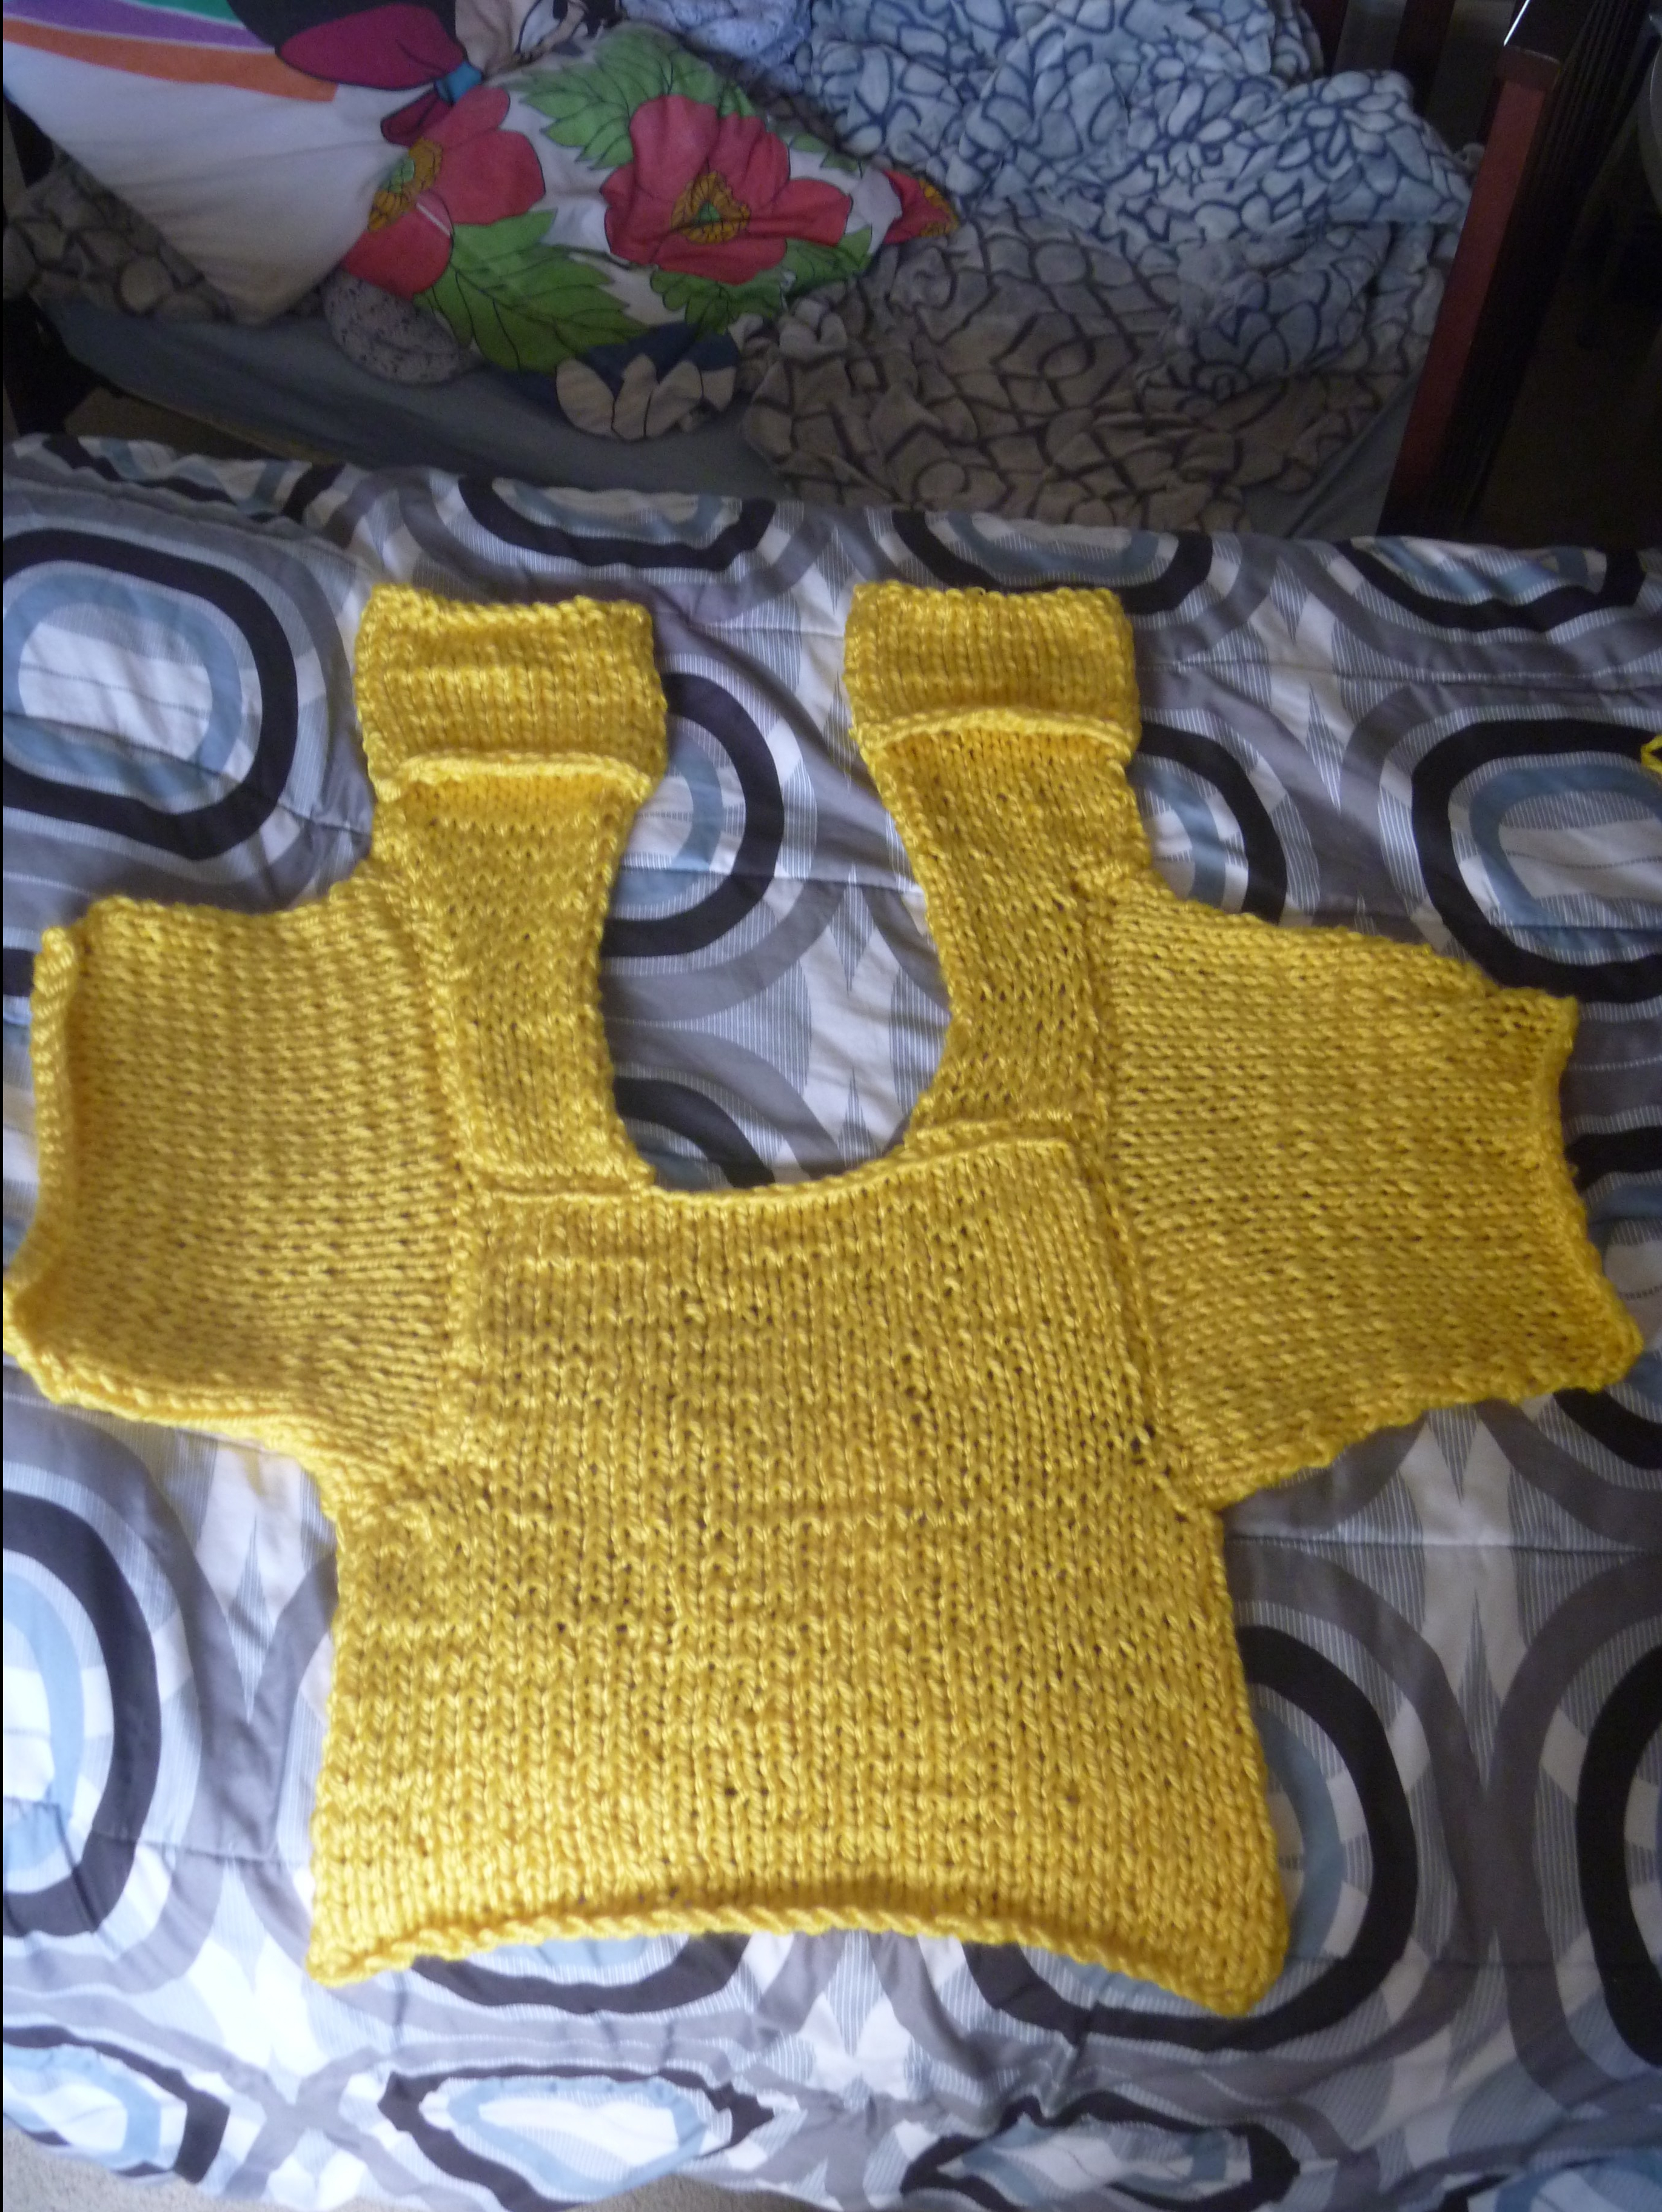 the yellow cardigan, without sides seamed